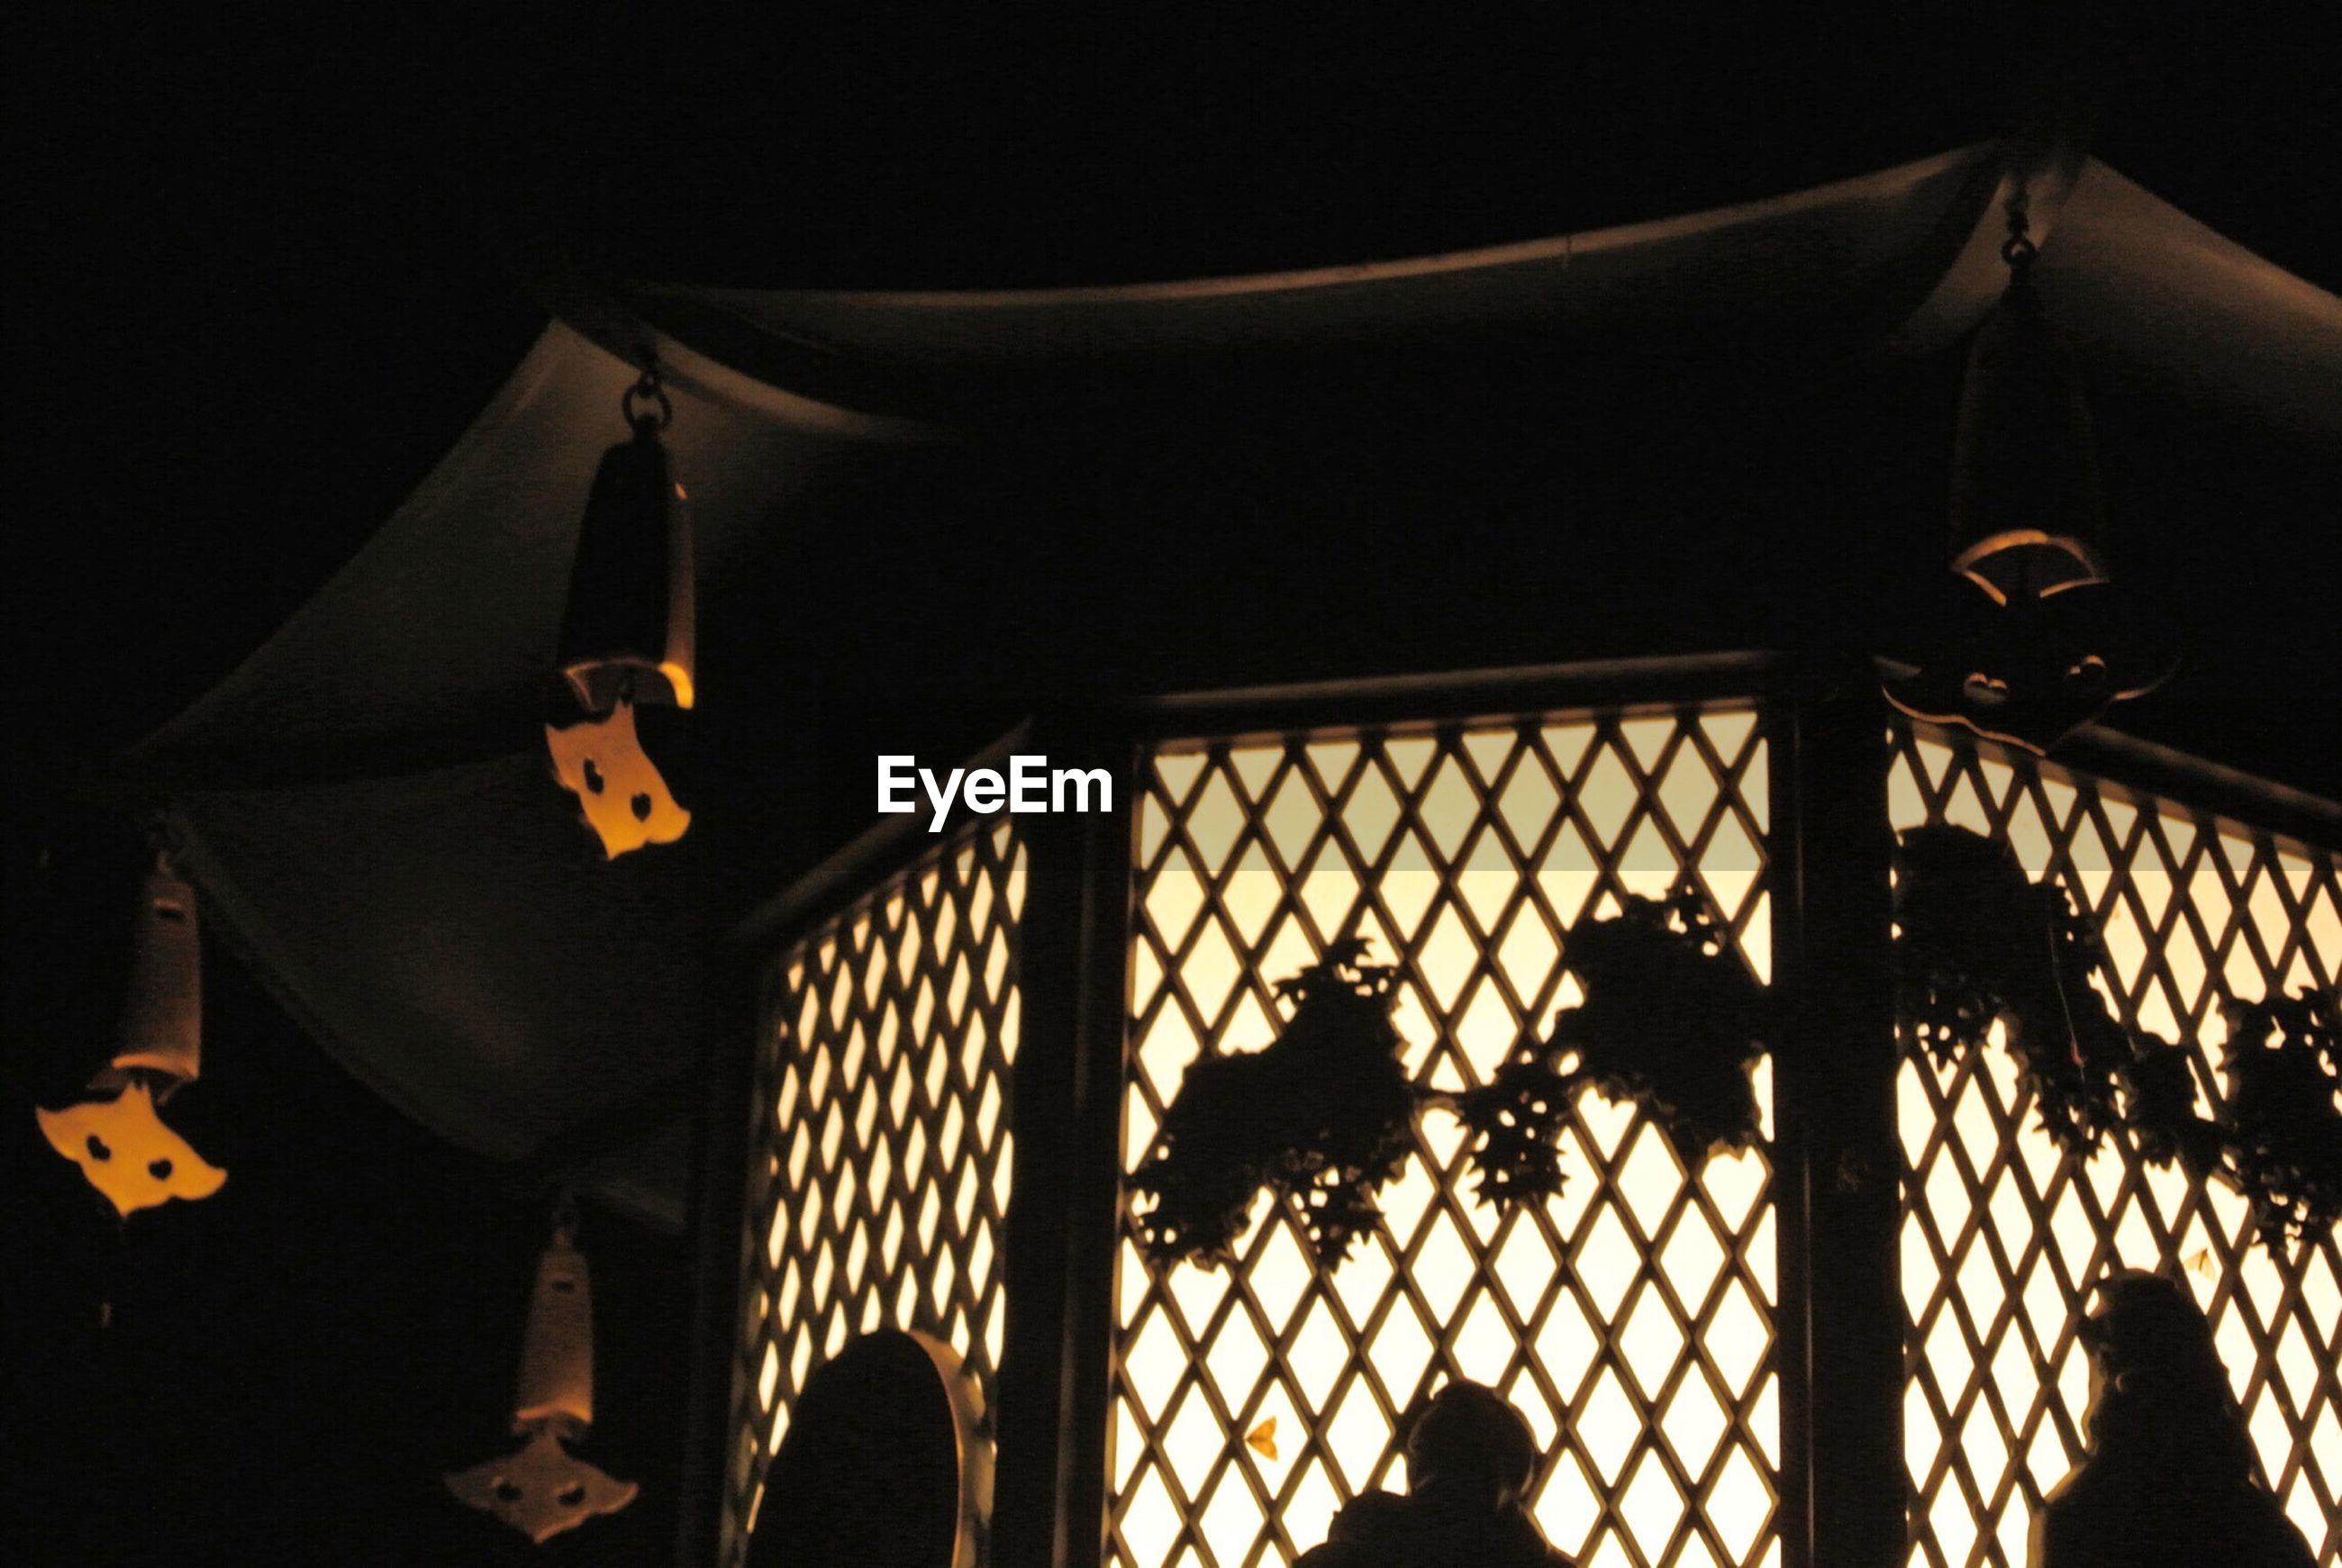 Silhouette of hanging objects from illuminated structure